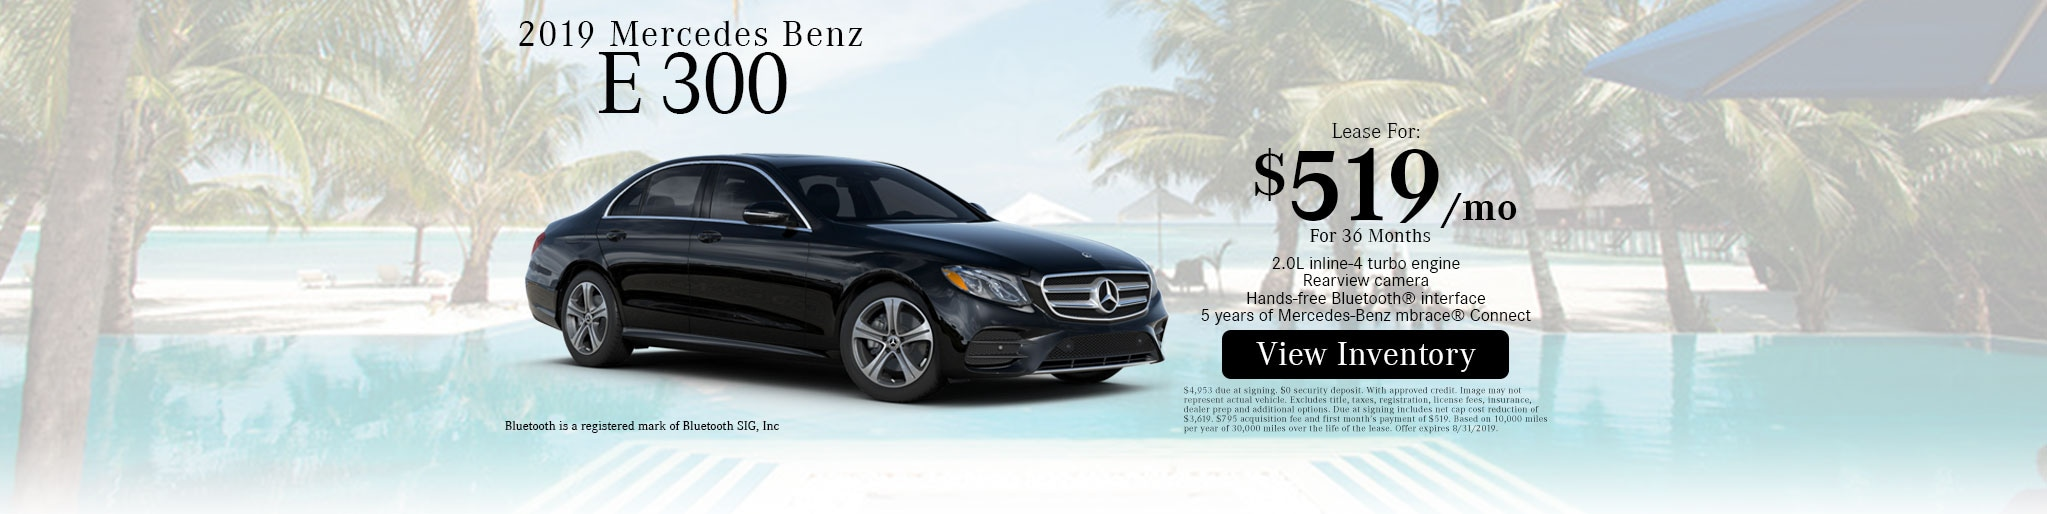 Mercedes-Benz of Tampa FL | New & Used 2017, 2018, 2019 Mercedes